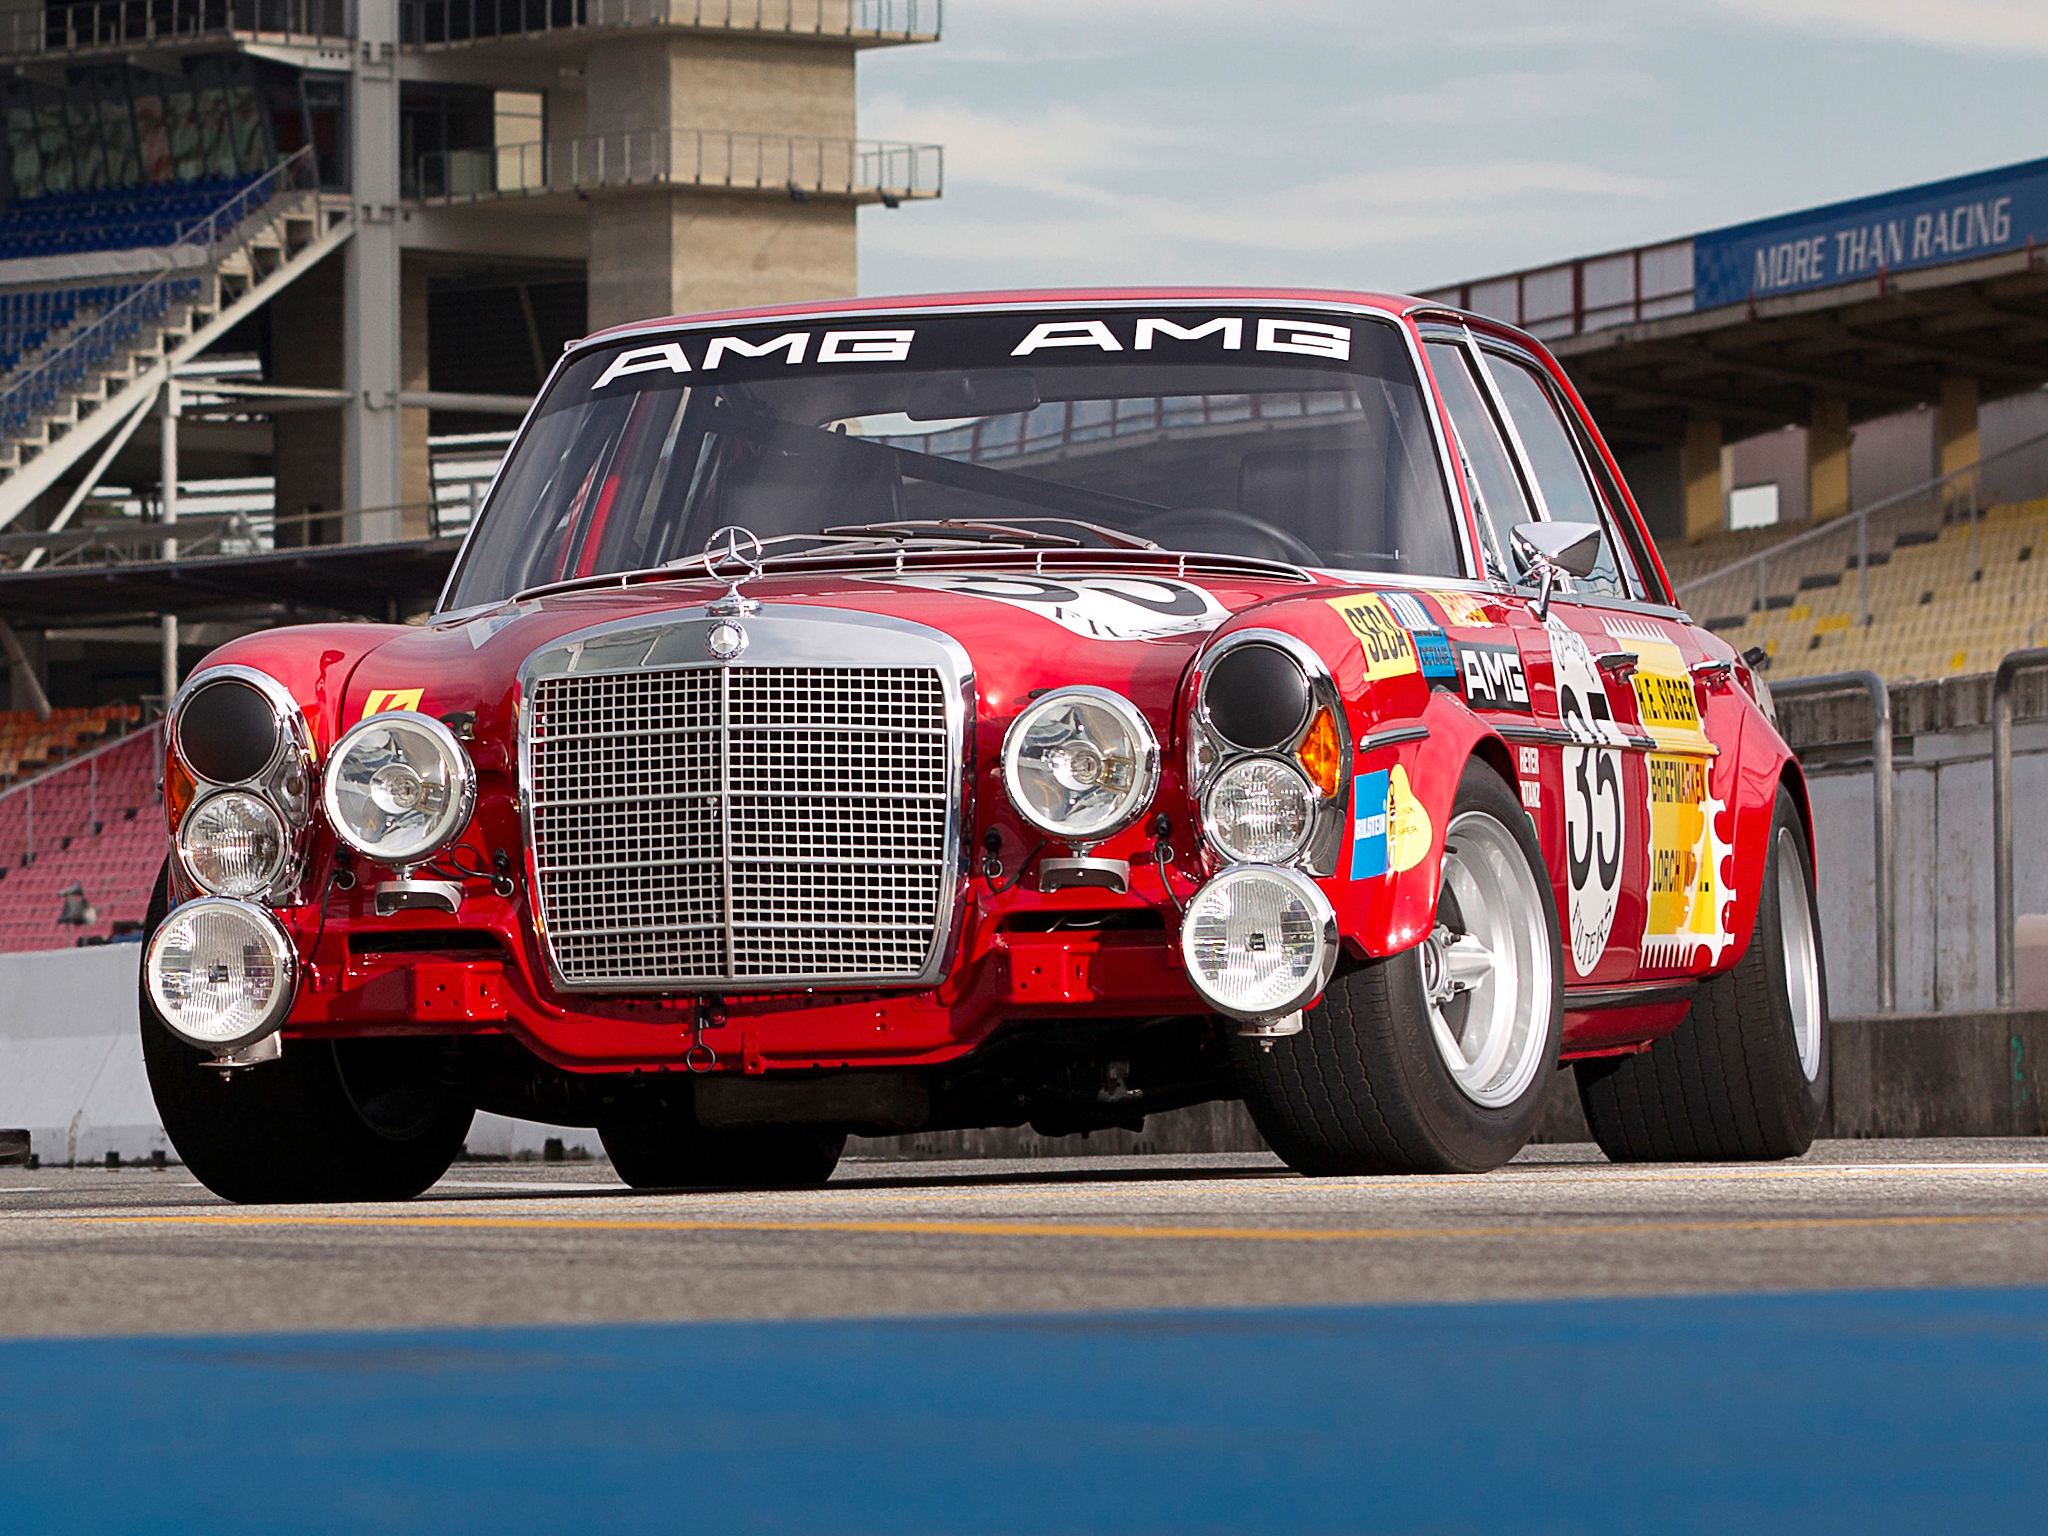 1971 mercedes benz amg 300 sel 6 3 race car w109 racing for Mercedes benz race